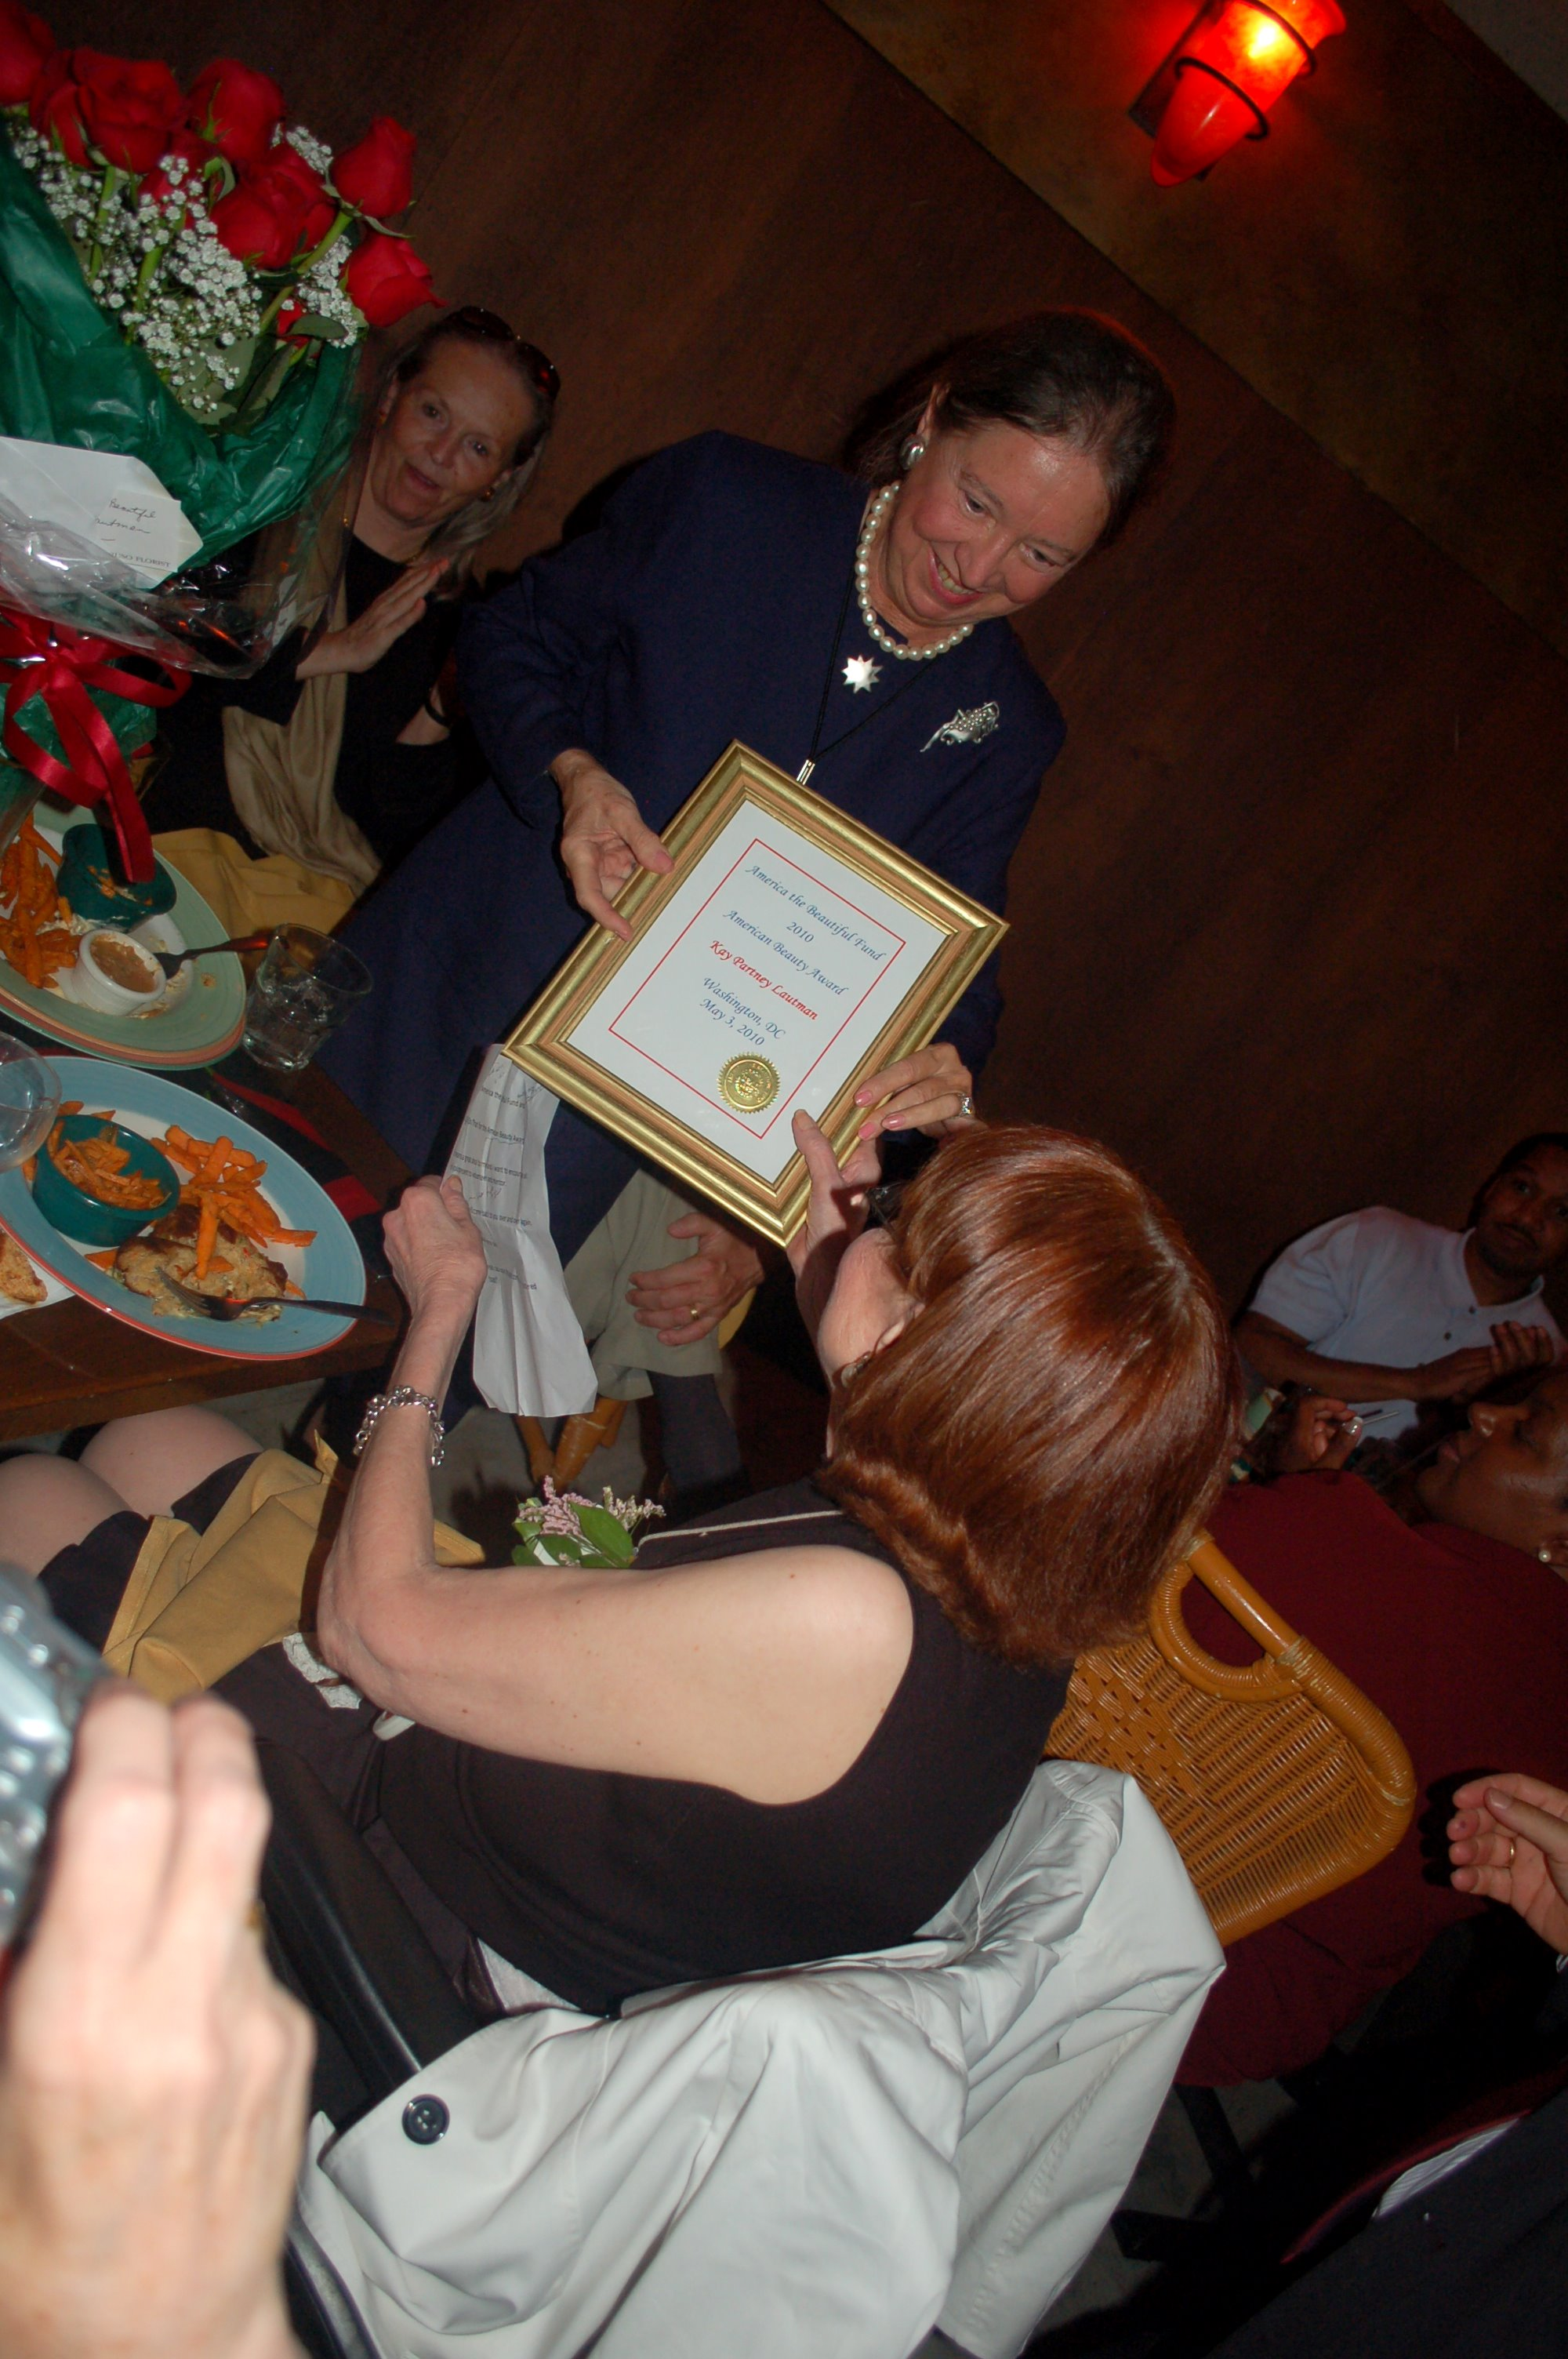 05-2010-nanine-1-presents-award-to-kay.jpg